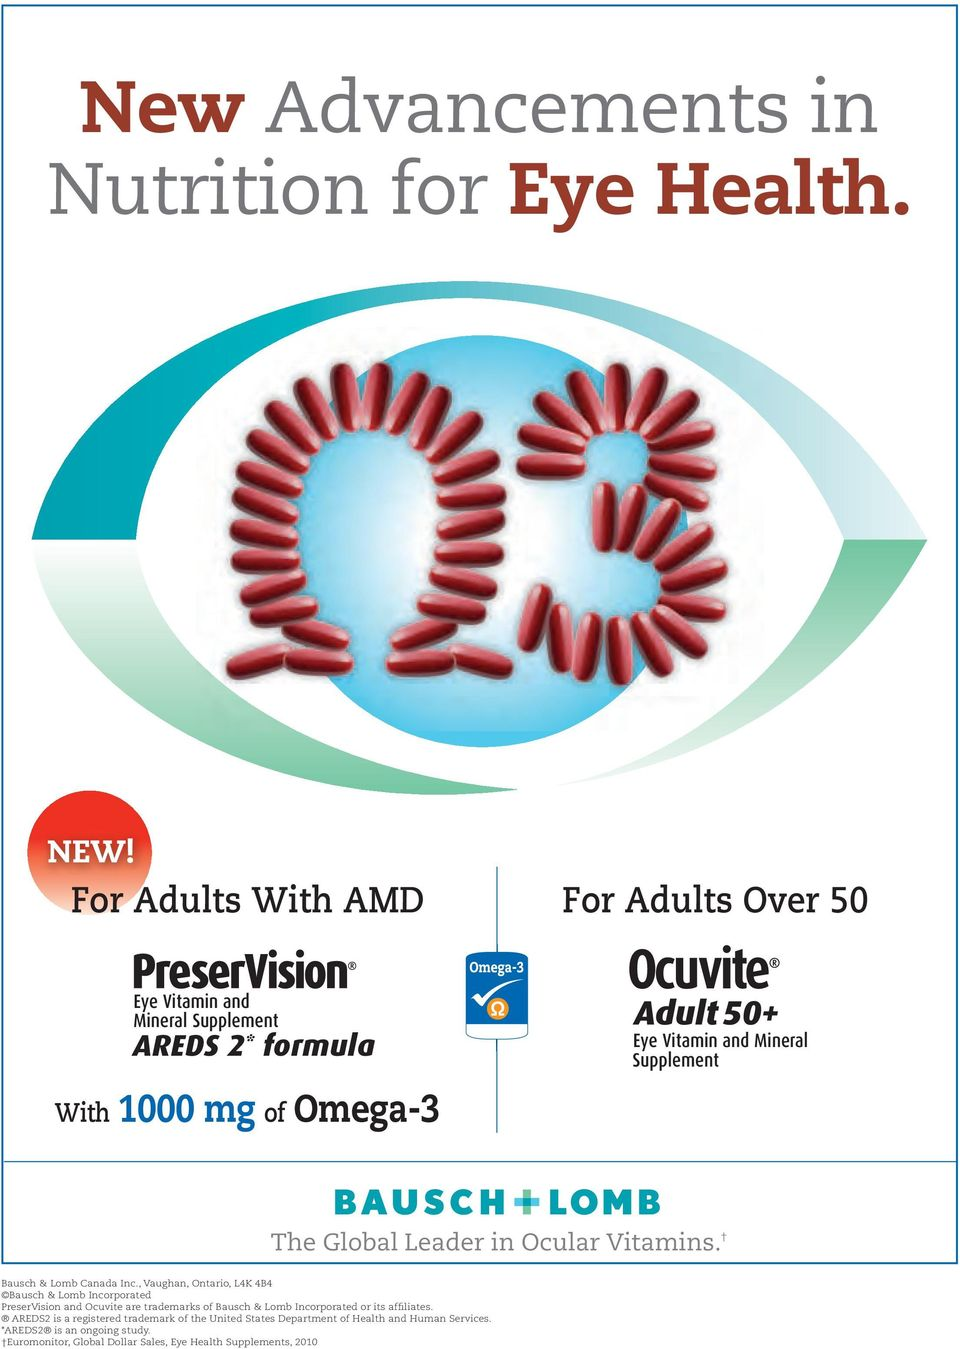 Omega-3 The Global Leader in Ocular Vitamins. Bausch & Lomb Canada Inc.